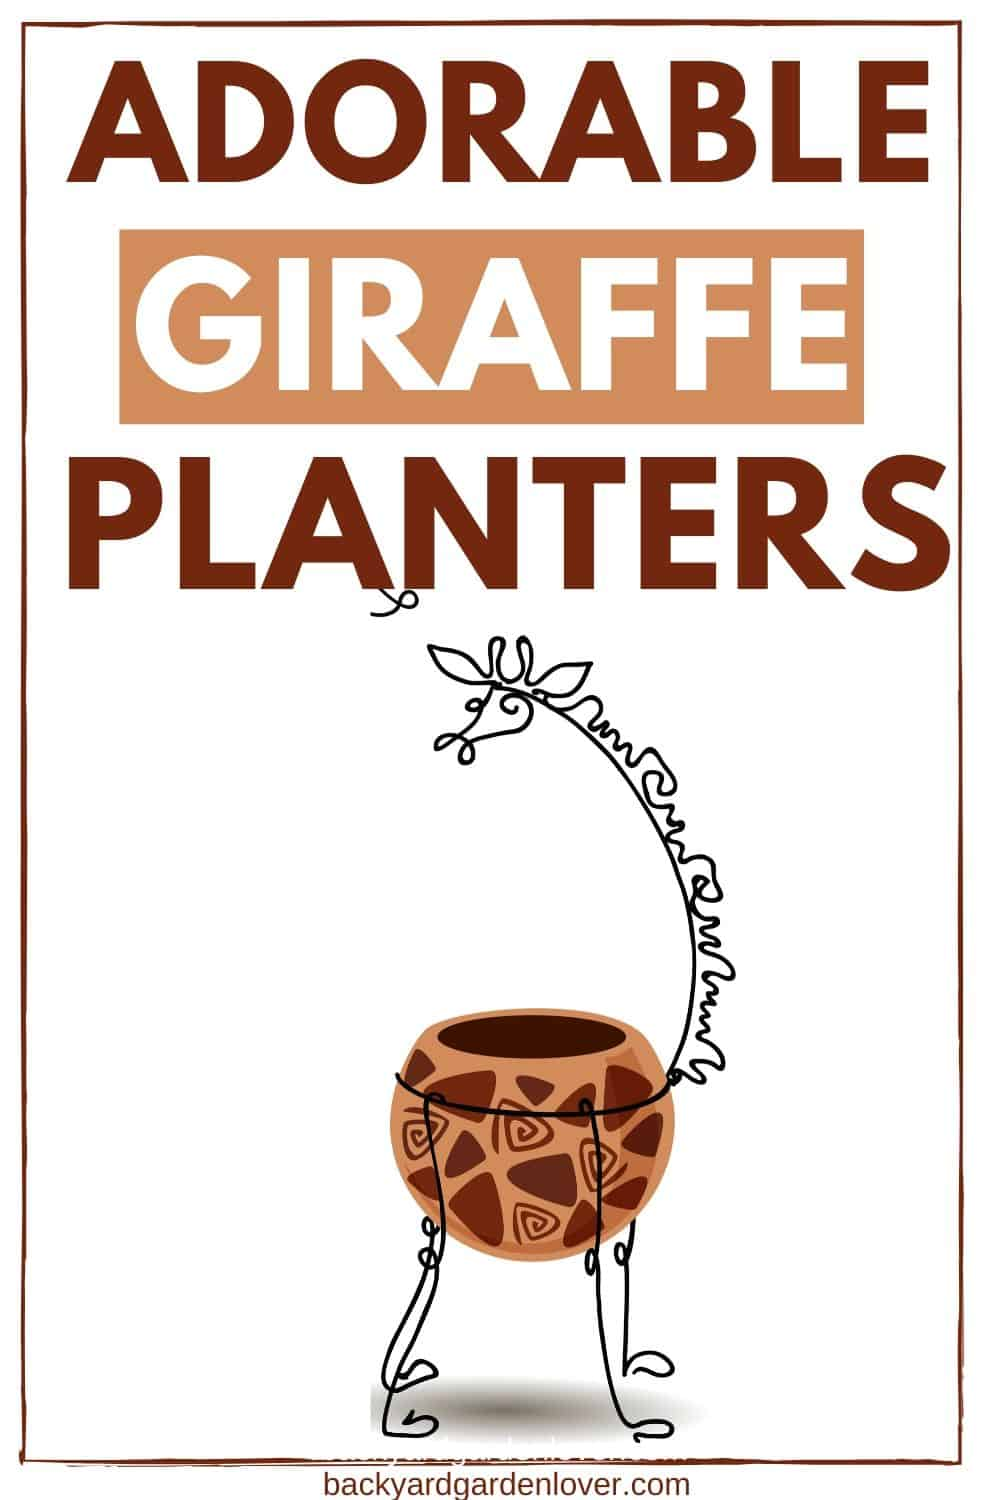 Adorable giraffe planters for your home